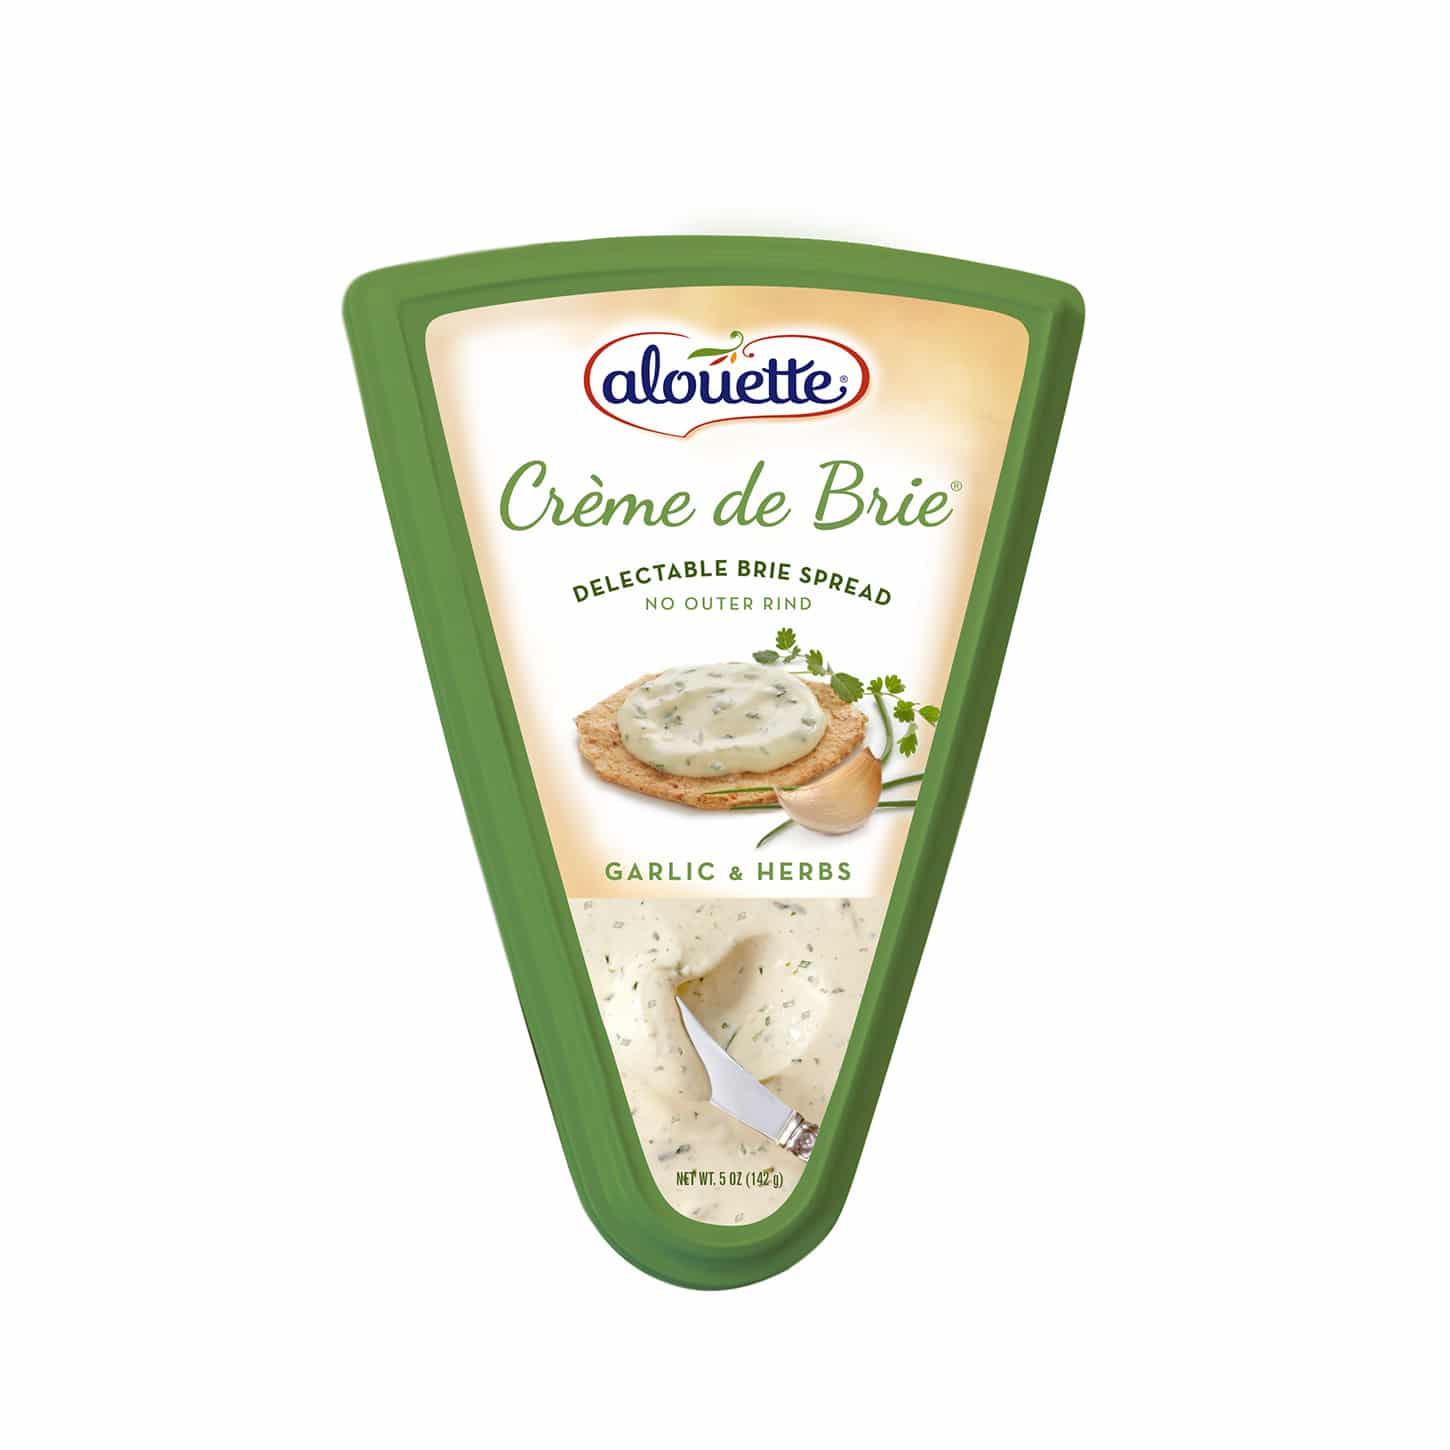 Alouette Crème de Brie Garlic & herbs packaging